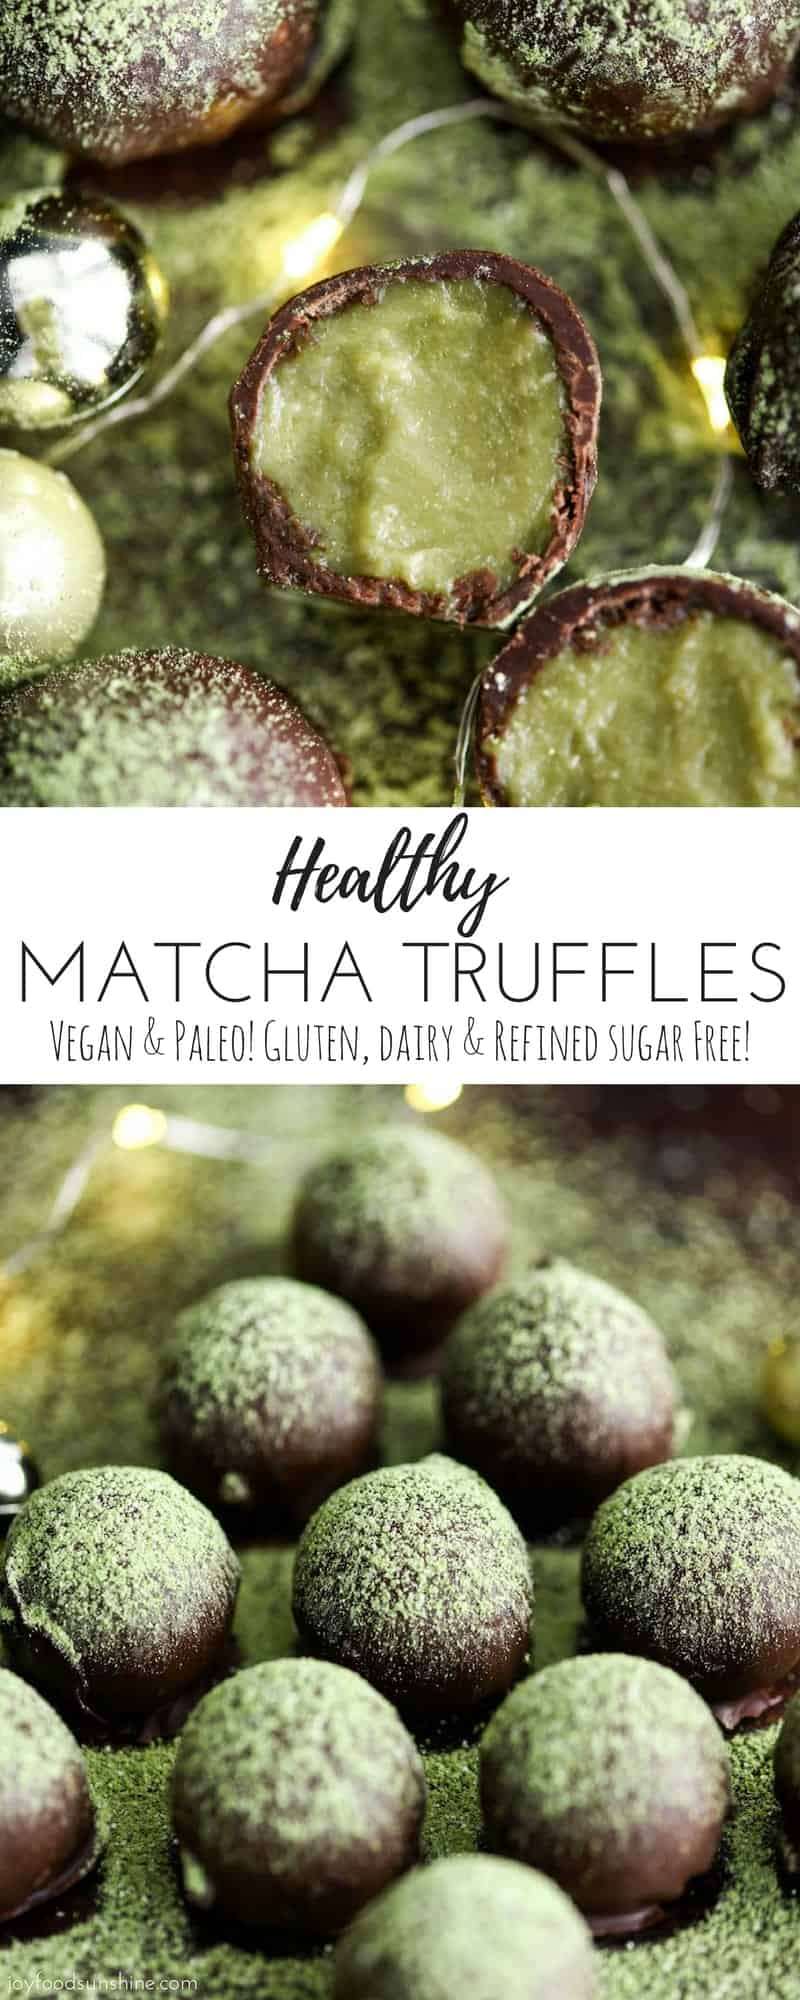 Healthy Matcha Truffles are the perfect holiday dessert recipe! They are vegan, paleo, gluten & dairy-free with NO refined sugar but no one would ever guess they're made with good-for-you ingredients! #vegan #paleo #glutenfree #dairyfree #christmas #matcha #truffles #recipe #vitamix